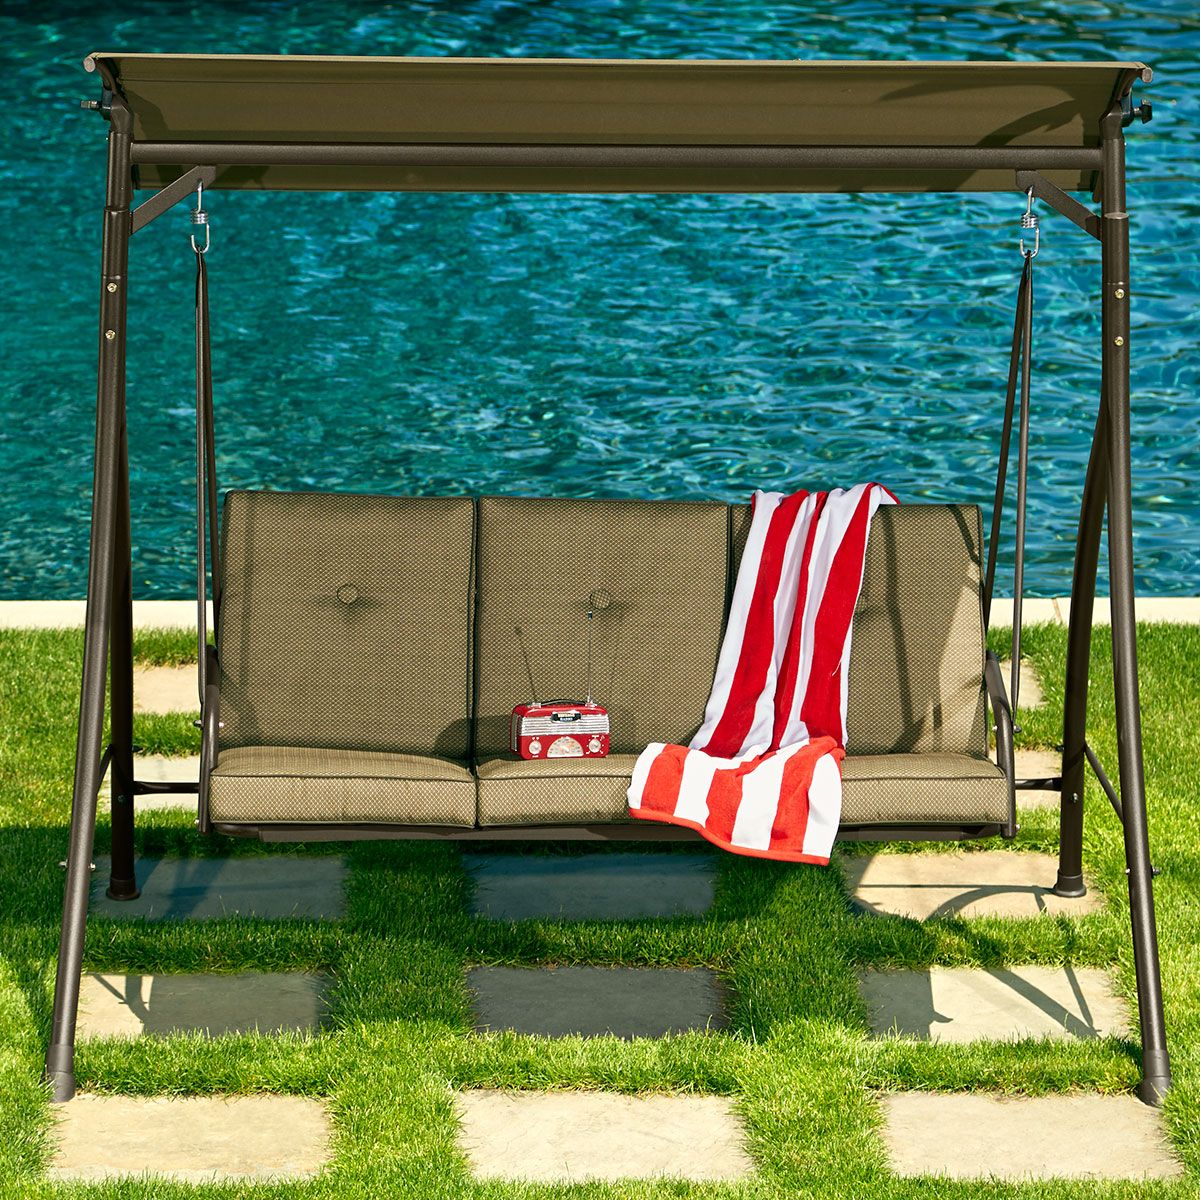 Fred Meyer Home Decor: Update Your Outdoor Space